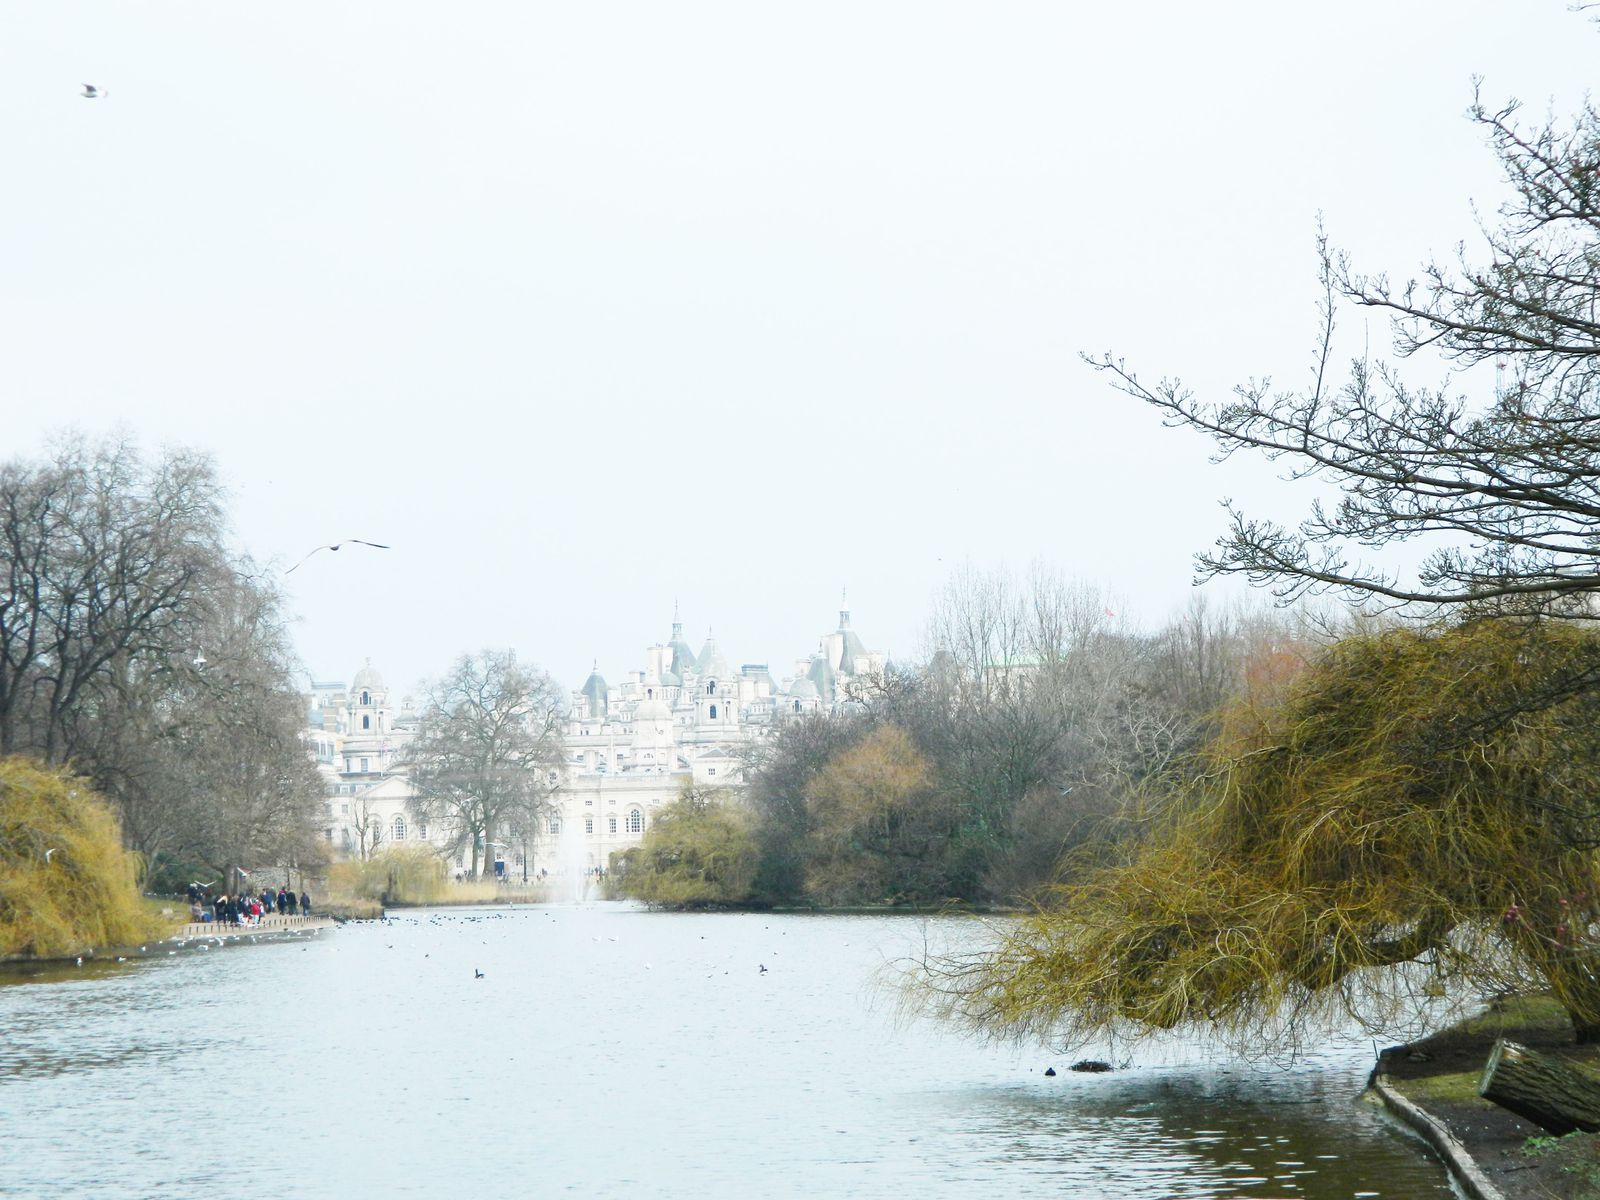 Saint James's Park - Buckingham Palace